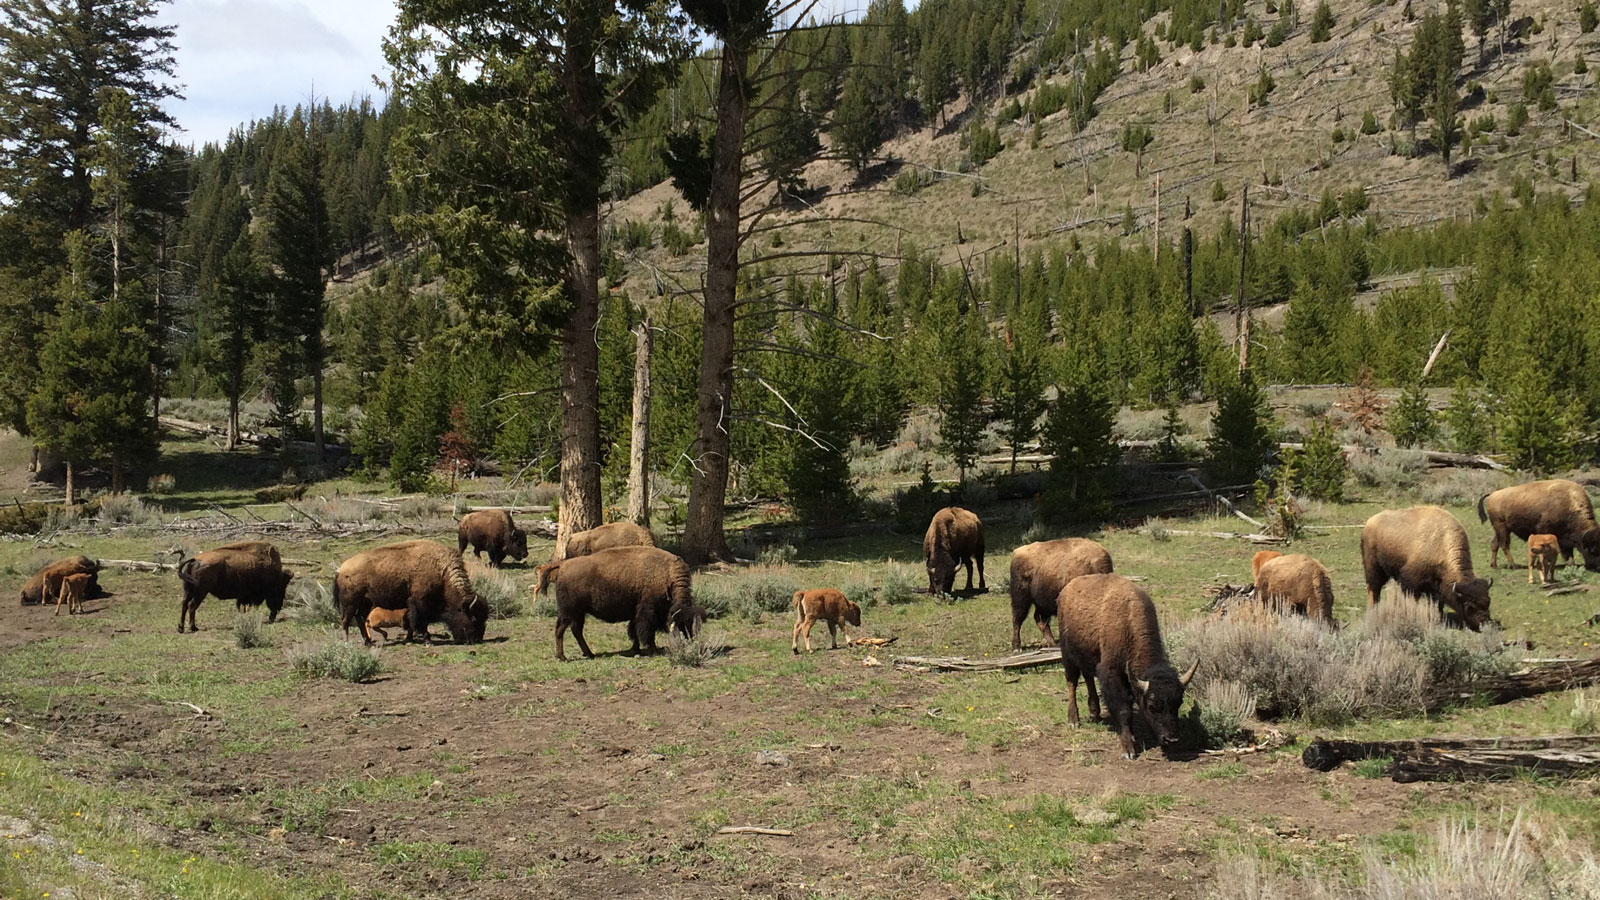 Bison in Yellowstone National Parkk